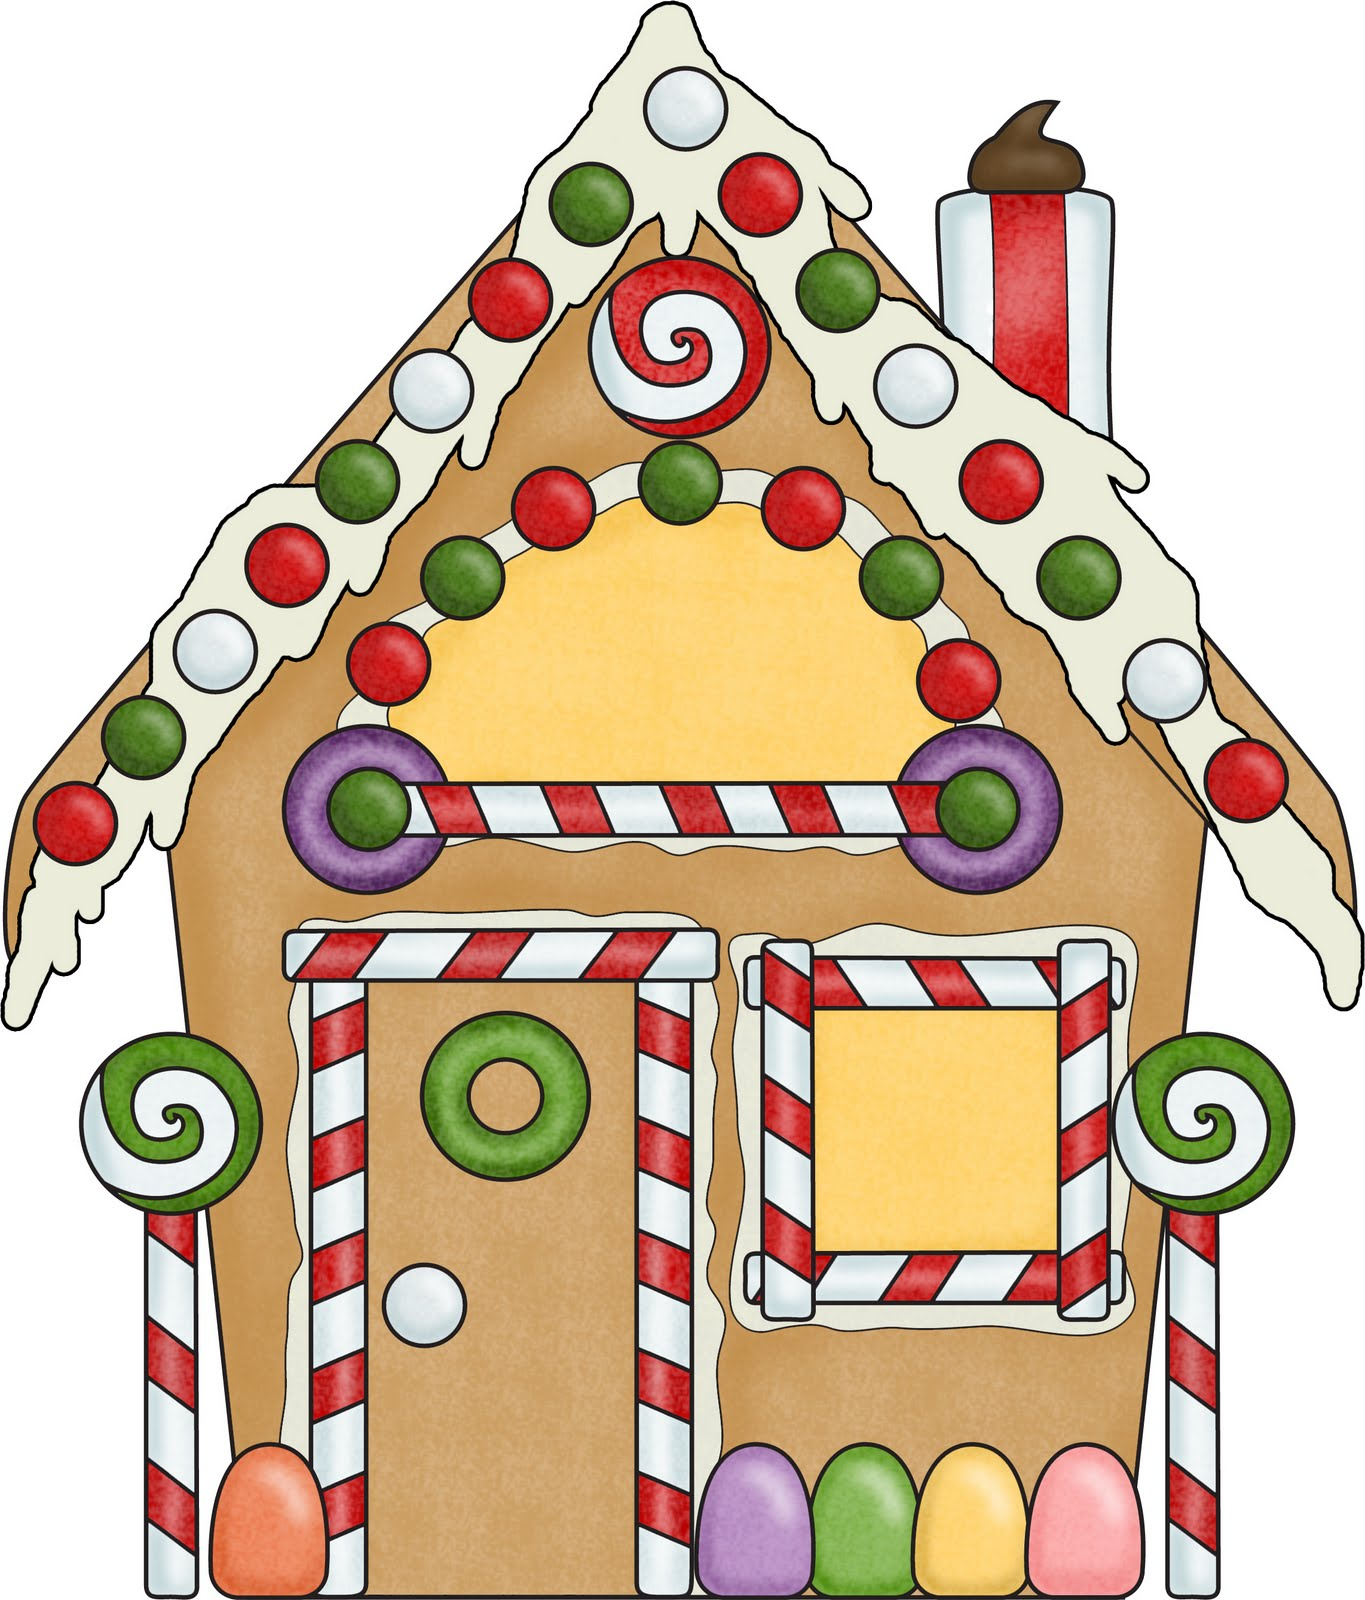 Gingerbread house cliparts free download clip art